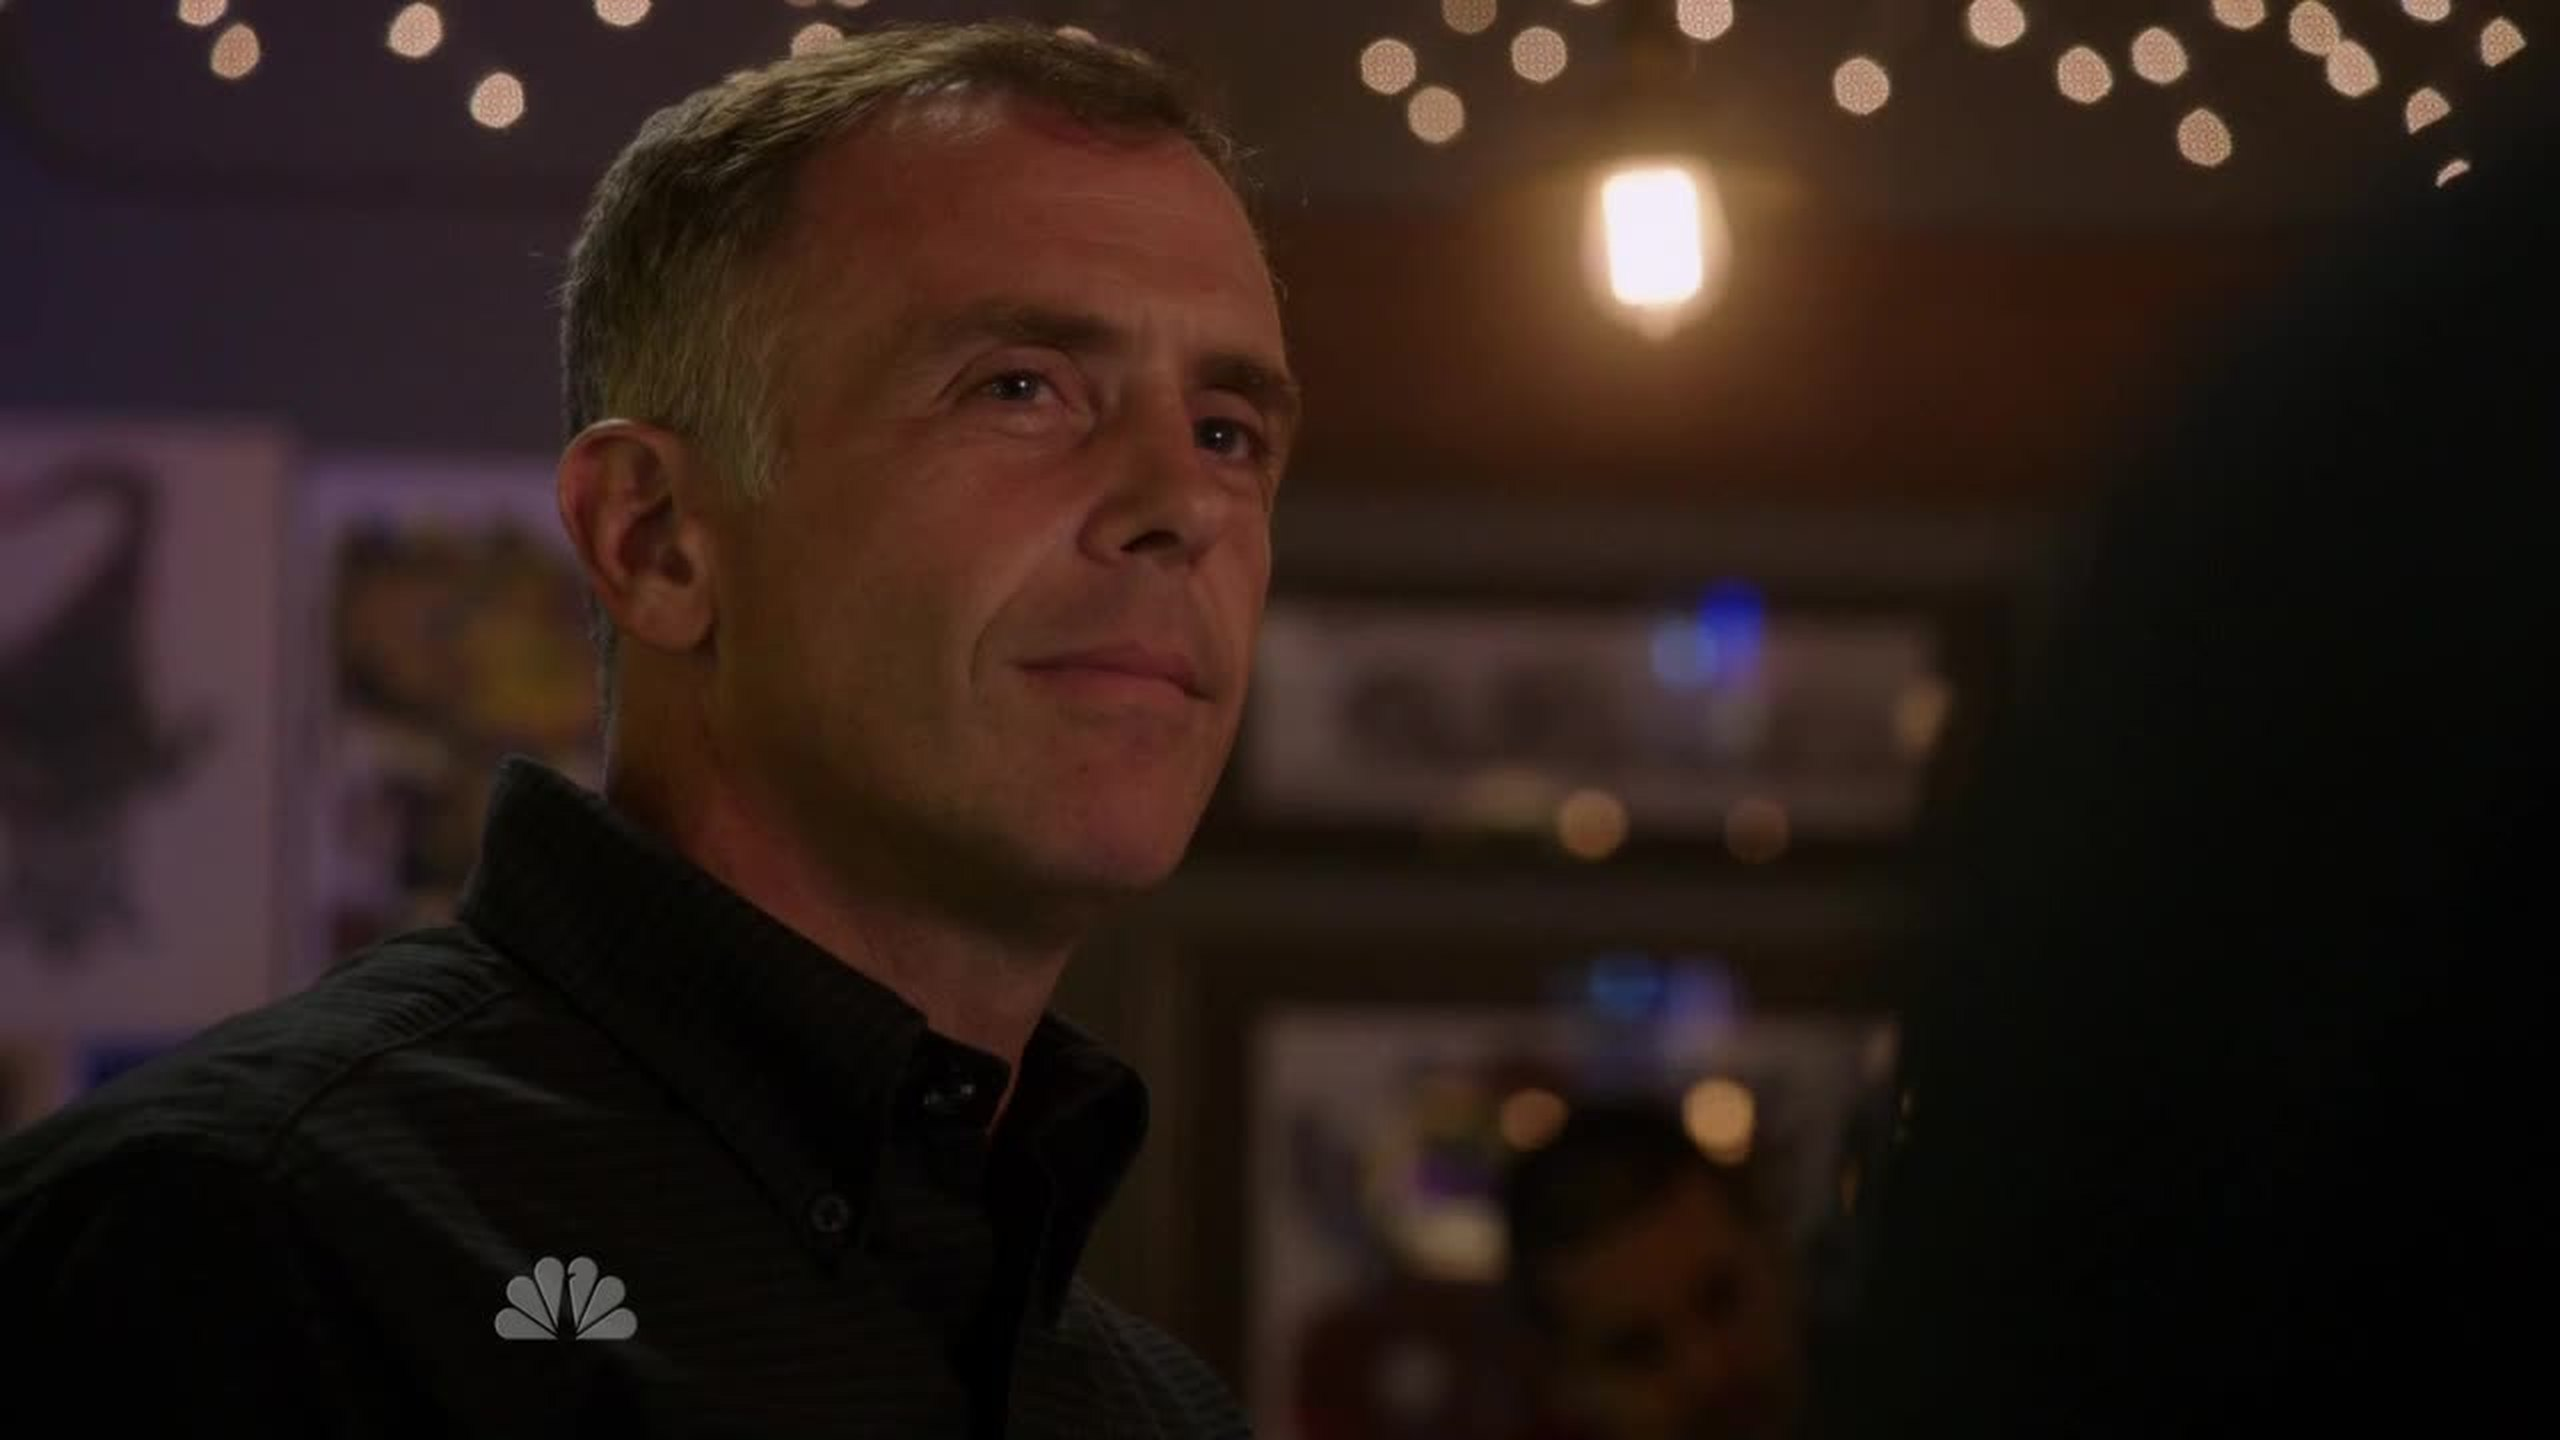 Herman is great. Every episode that involves him is always very emotional. The guy is a very good actor. I love him